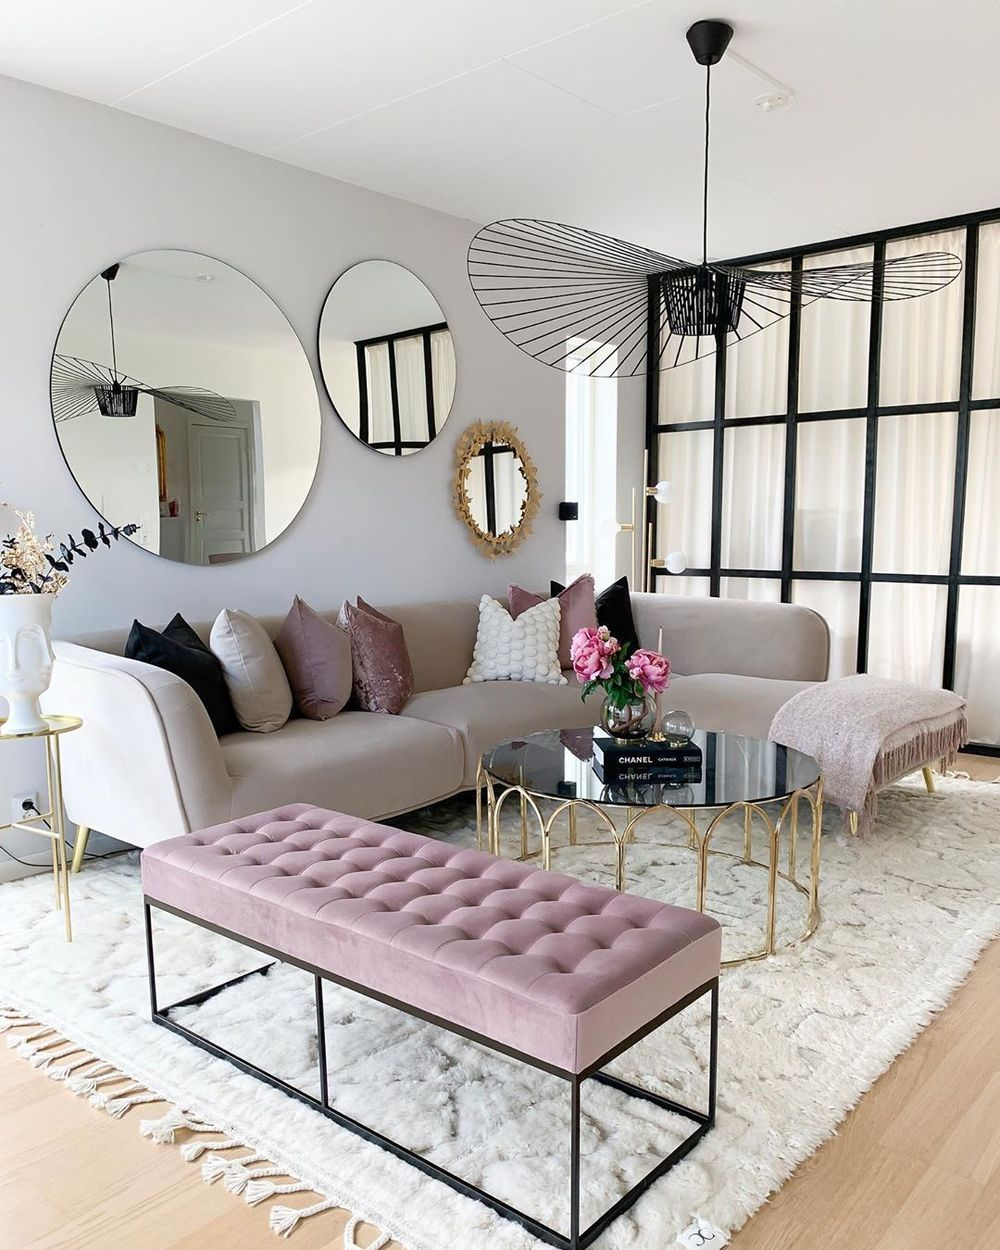 glam living room sectional sofa, glam living room inspiration, interior design, living room design, sectional sofa styling, sectional couch inspiration, Red Soles and Red Wine